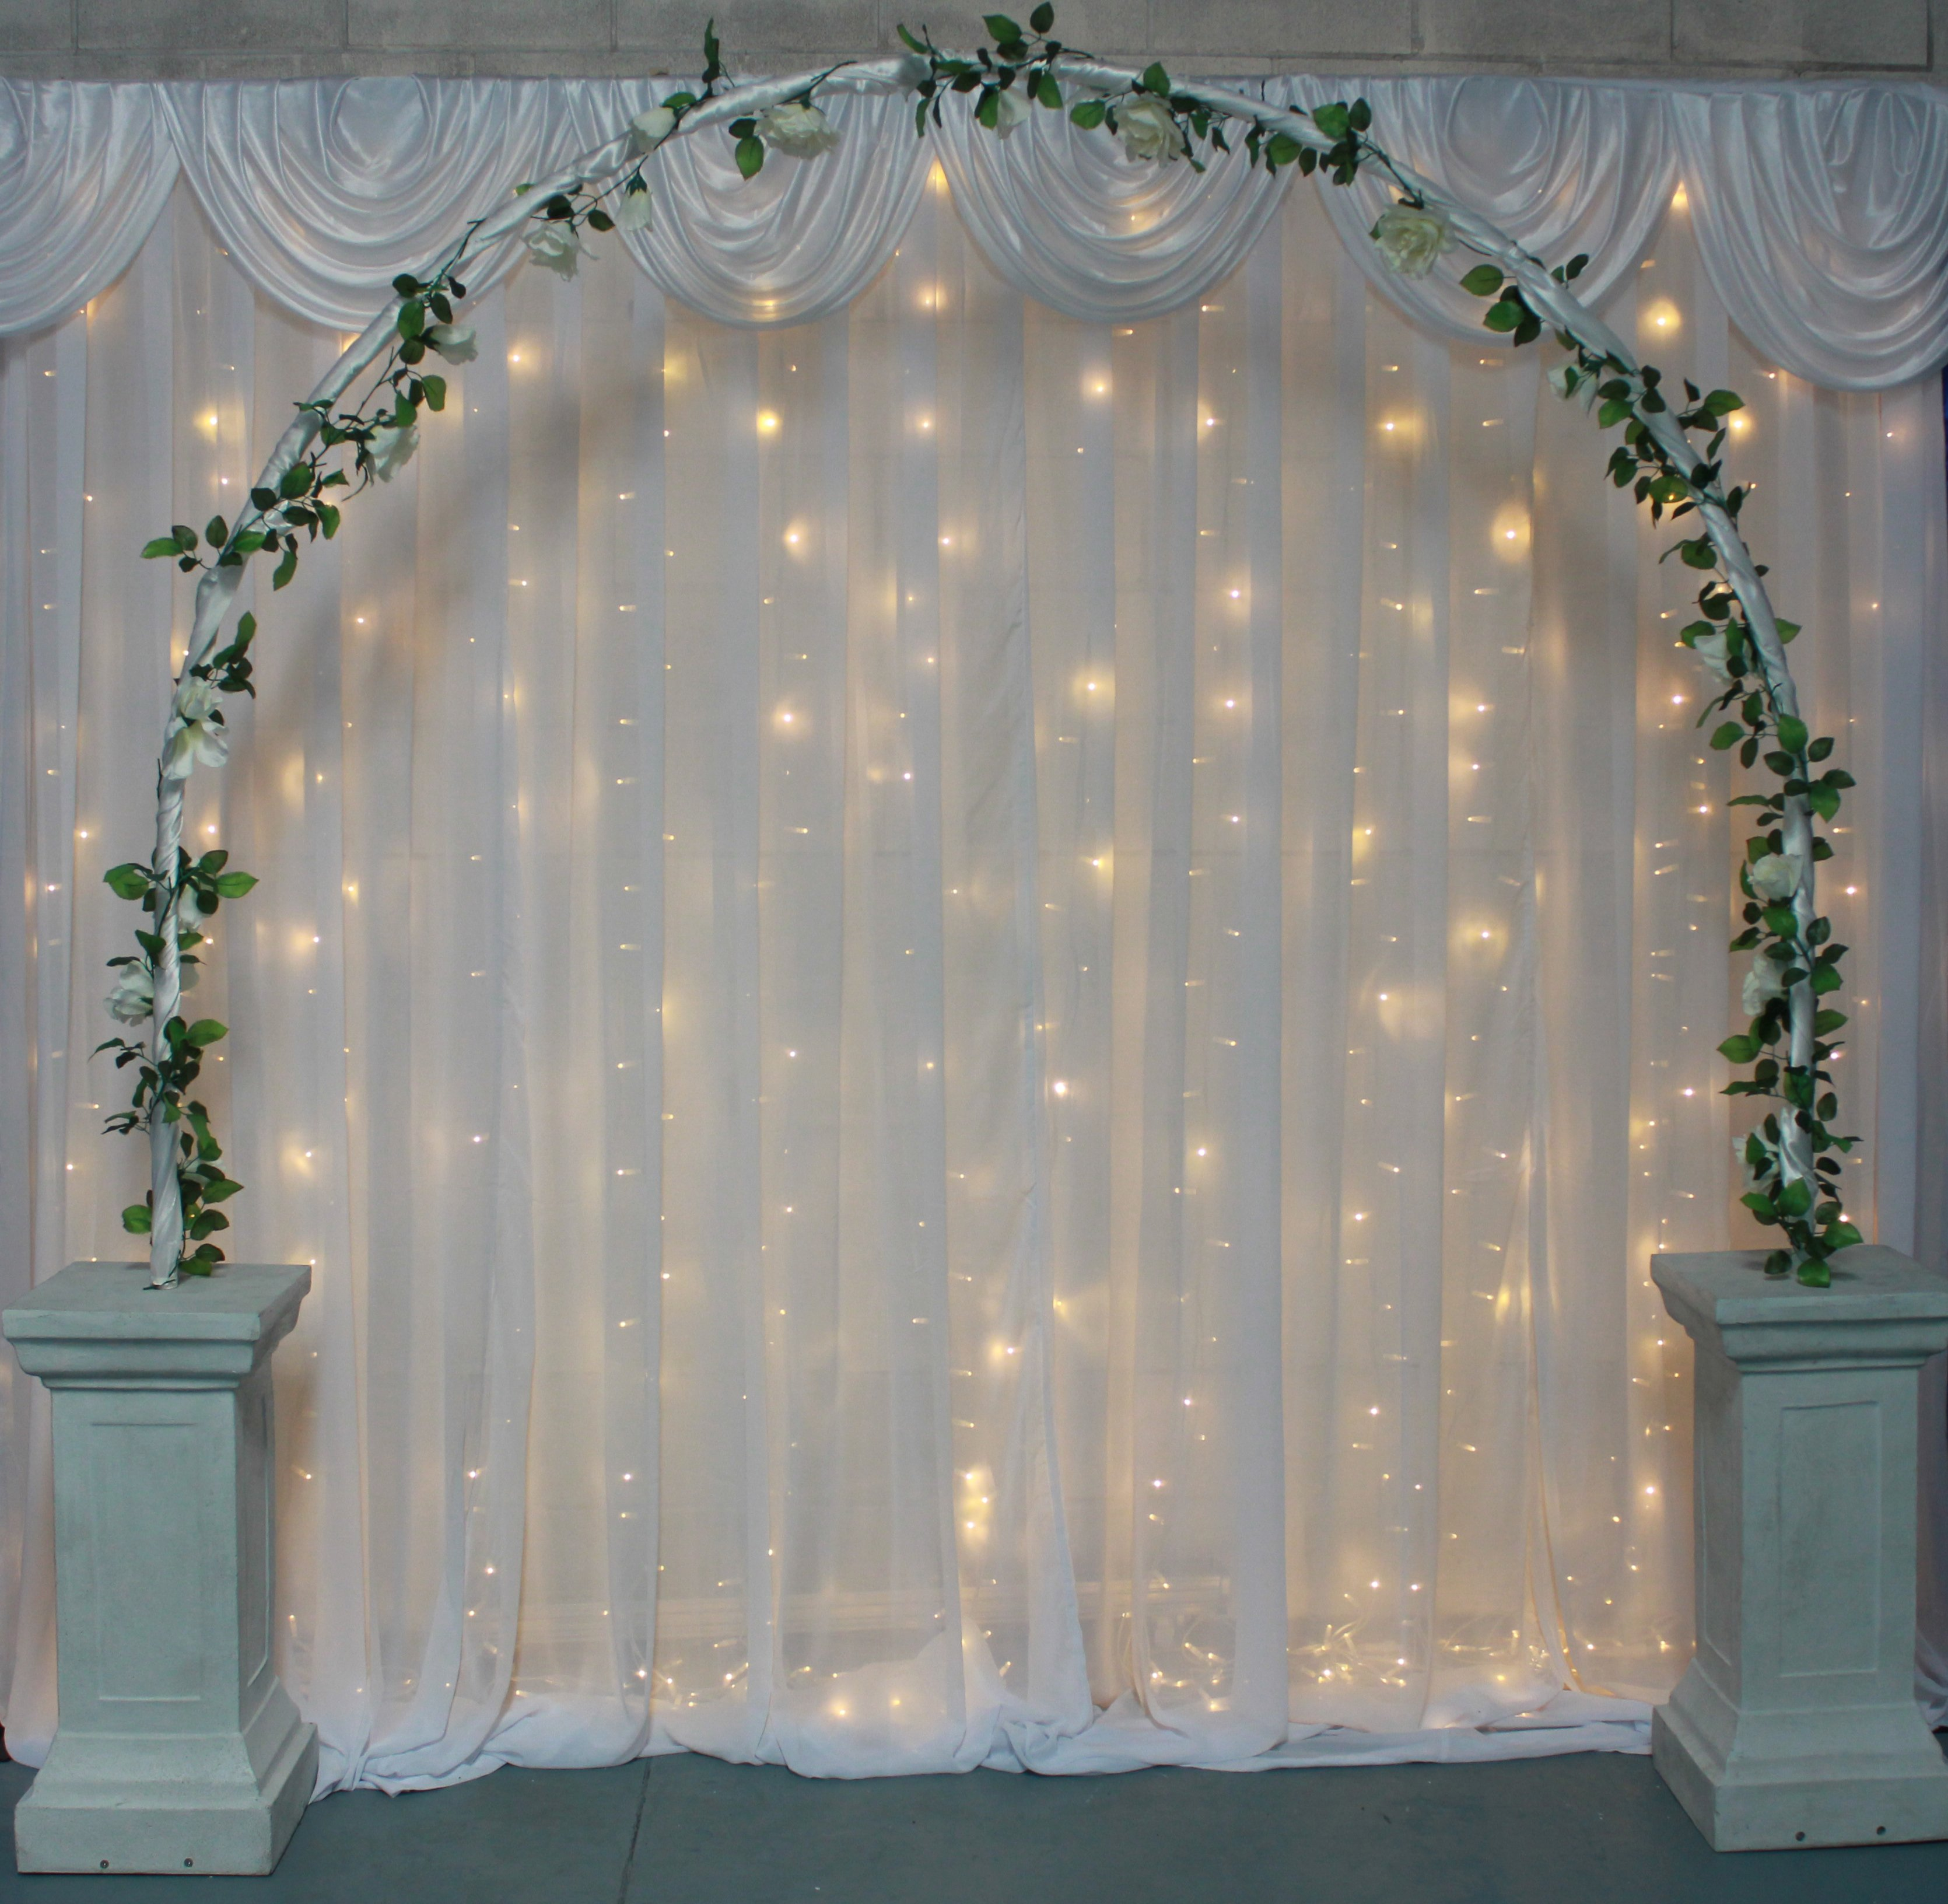 Wedding Pillar Archway with Garland